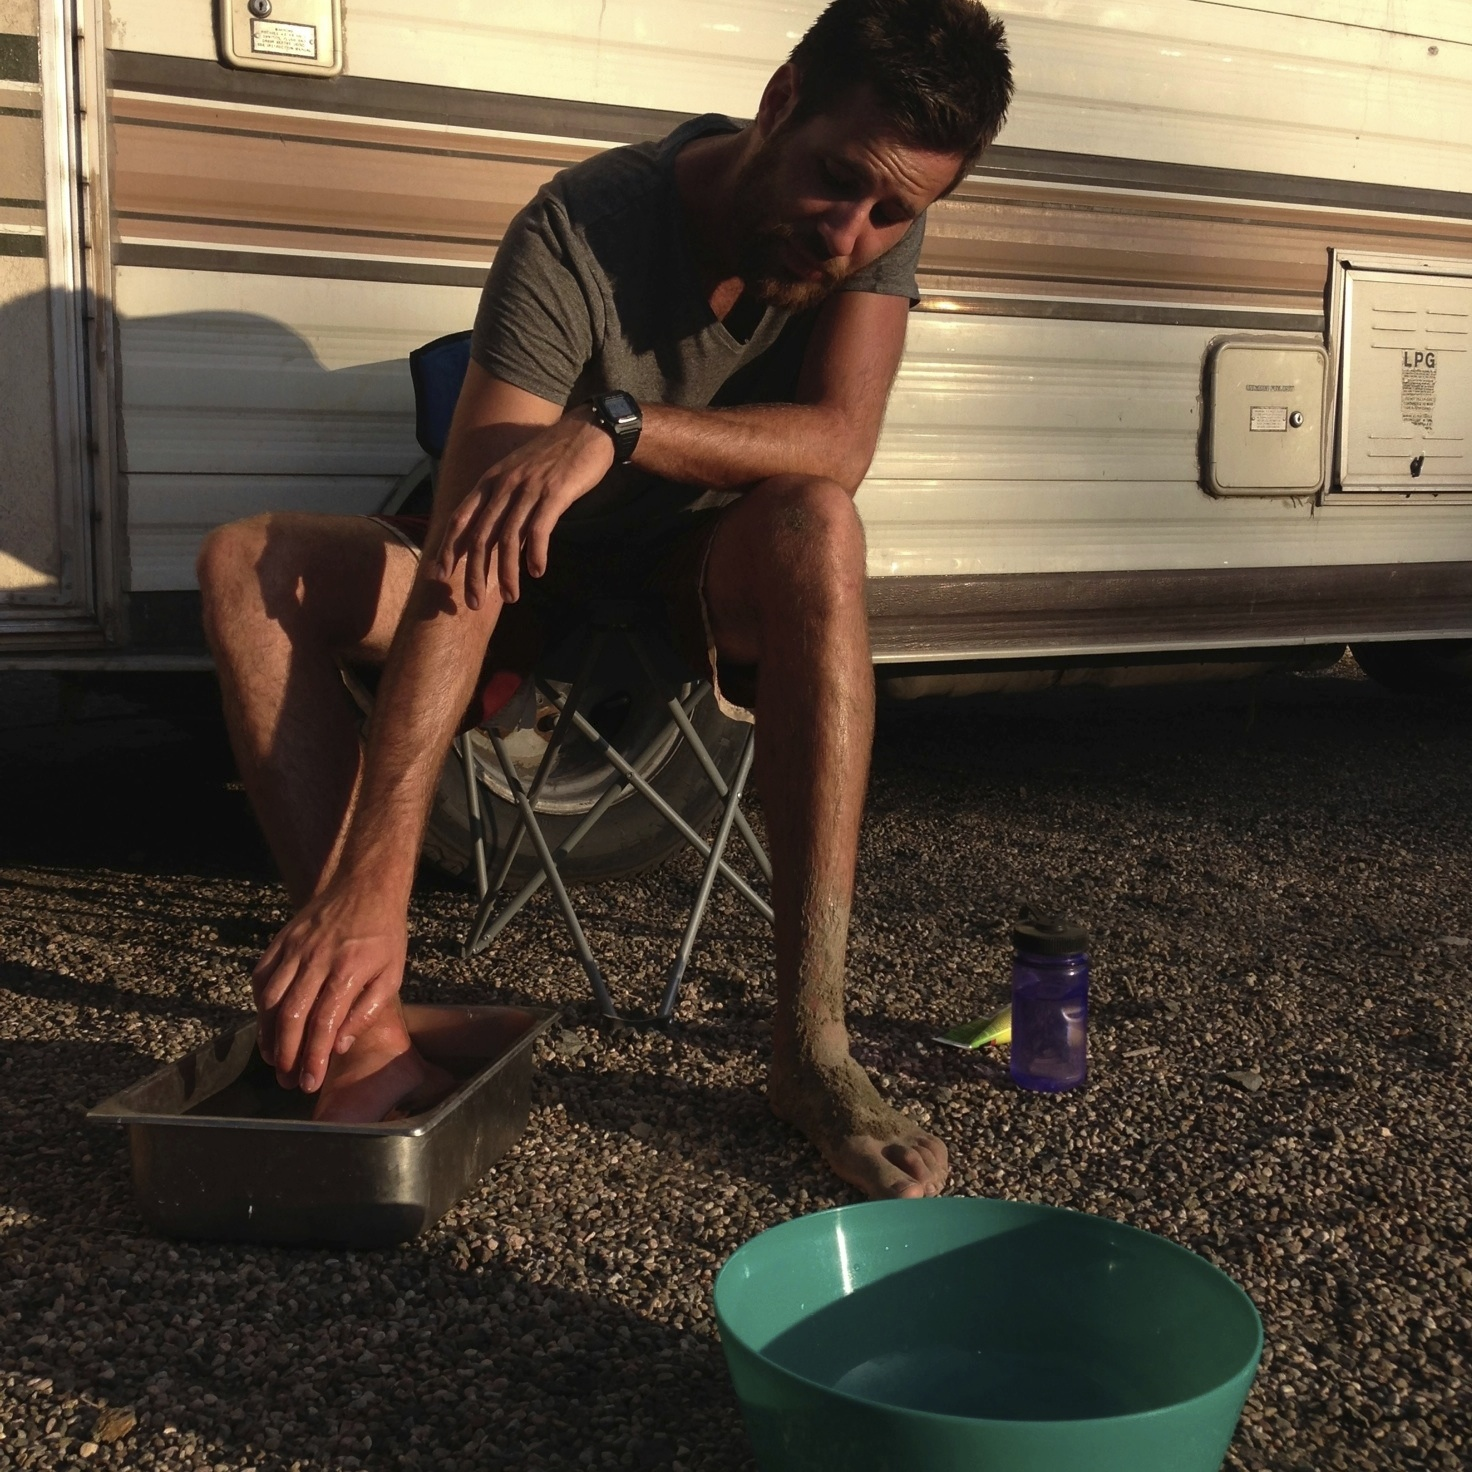 Cameron putting his foot in scorching hot water to deal with a stingray wound.